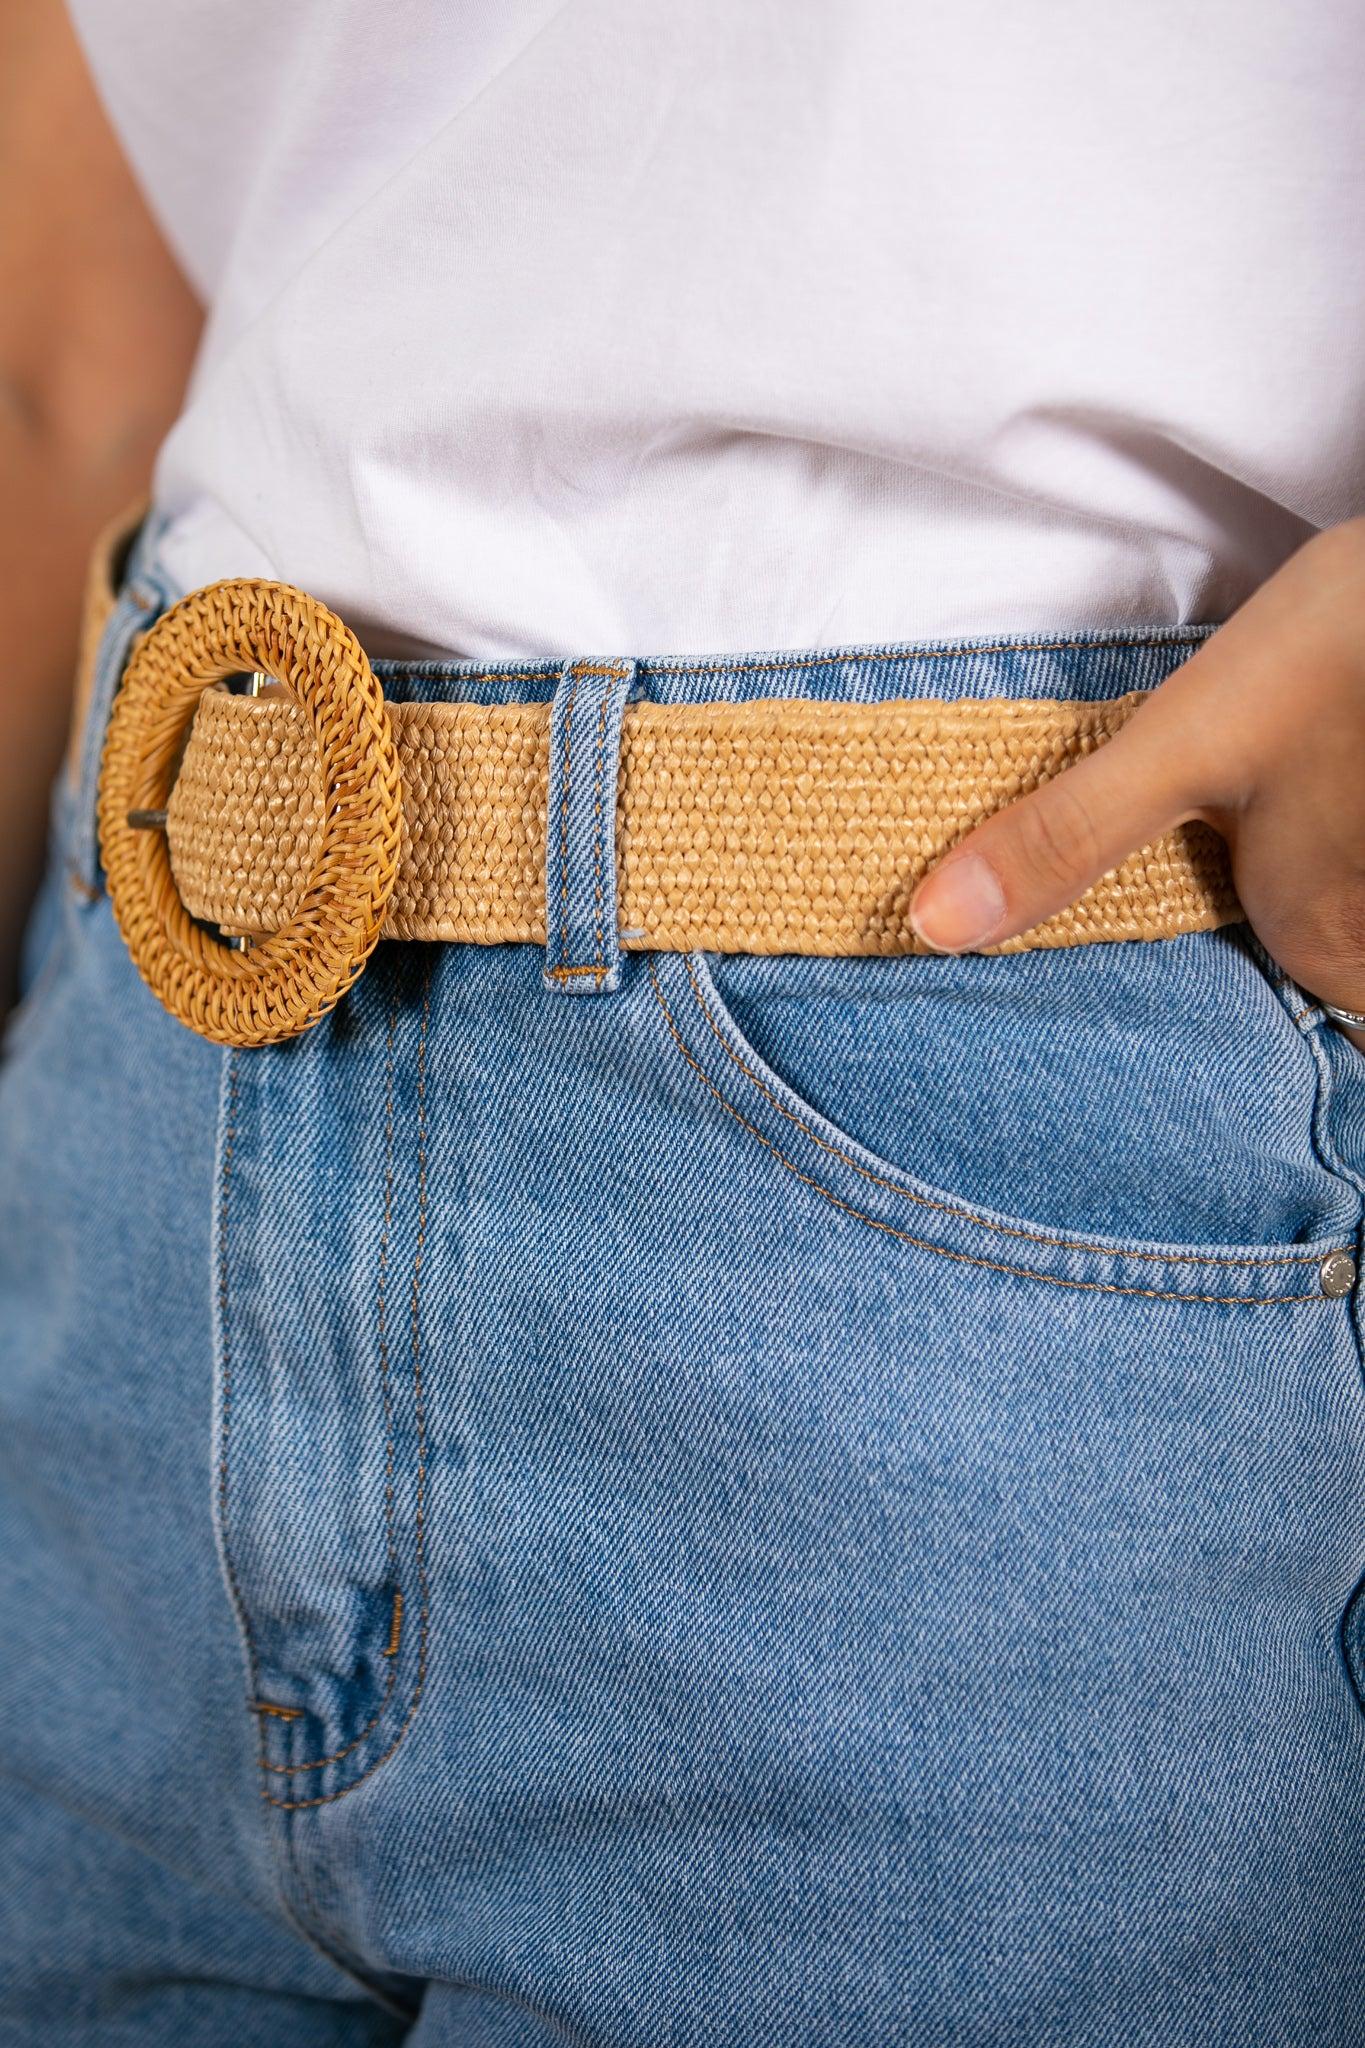 Ceba Belt in Tan